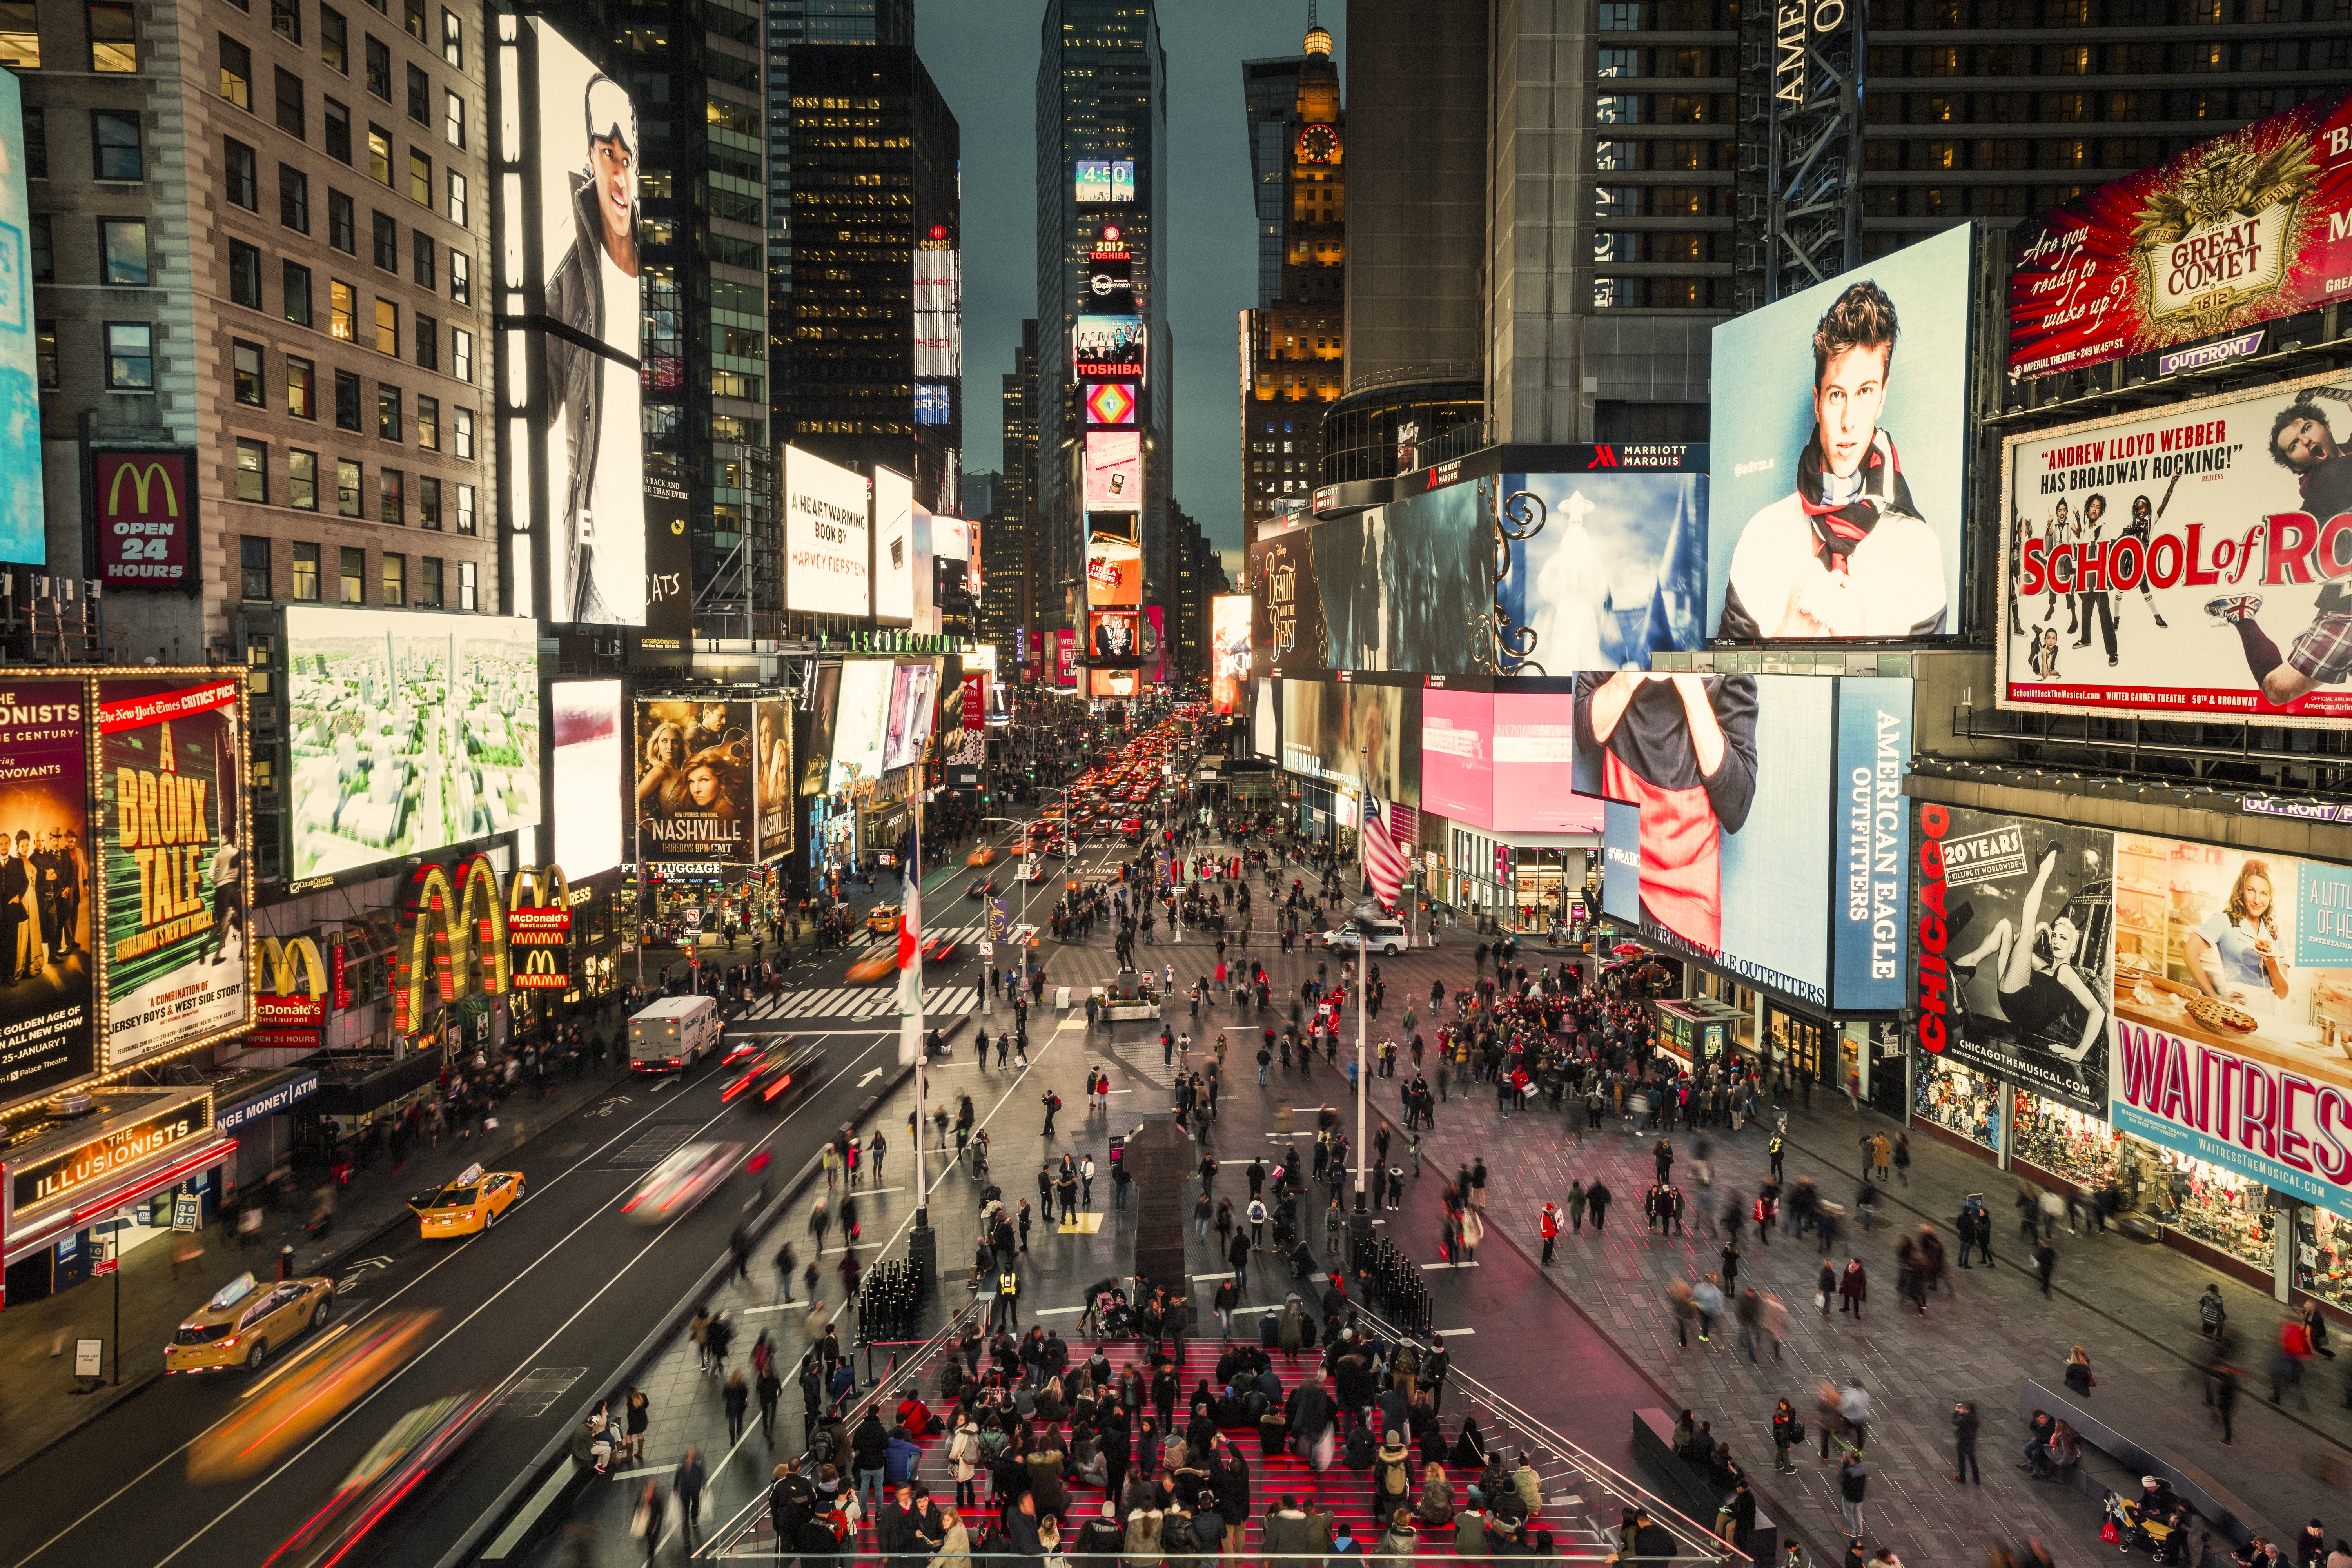 An aerial view of the Time Square pedestrian mall surrounded by many illuminated billboards and signs on buildings. There are people walking in the mall area.